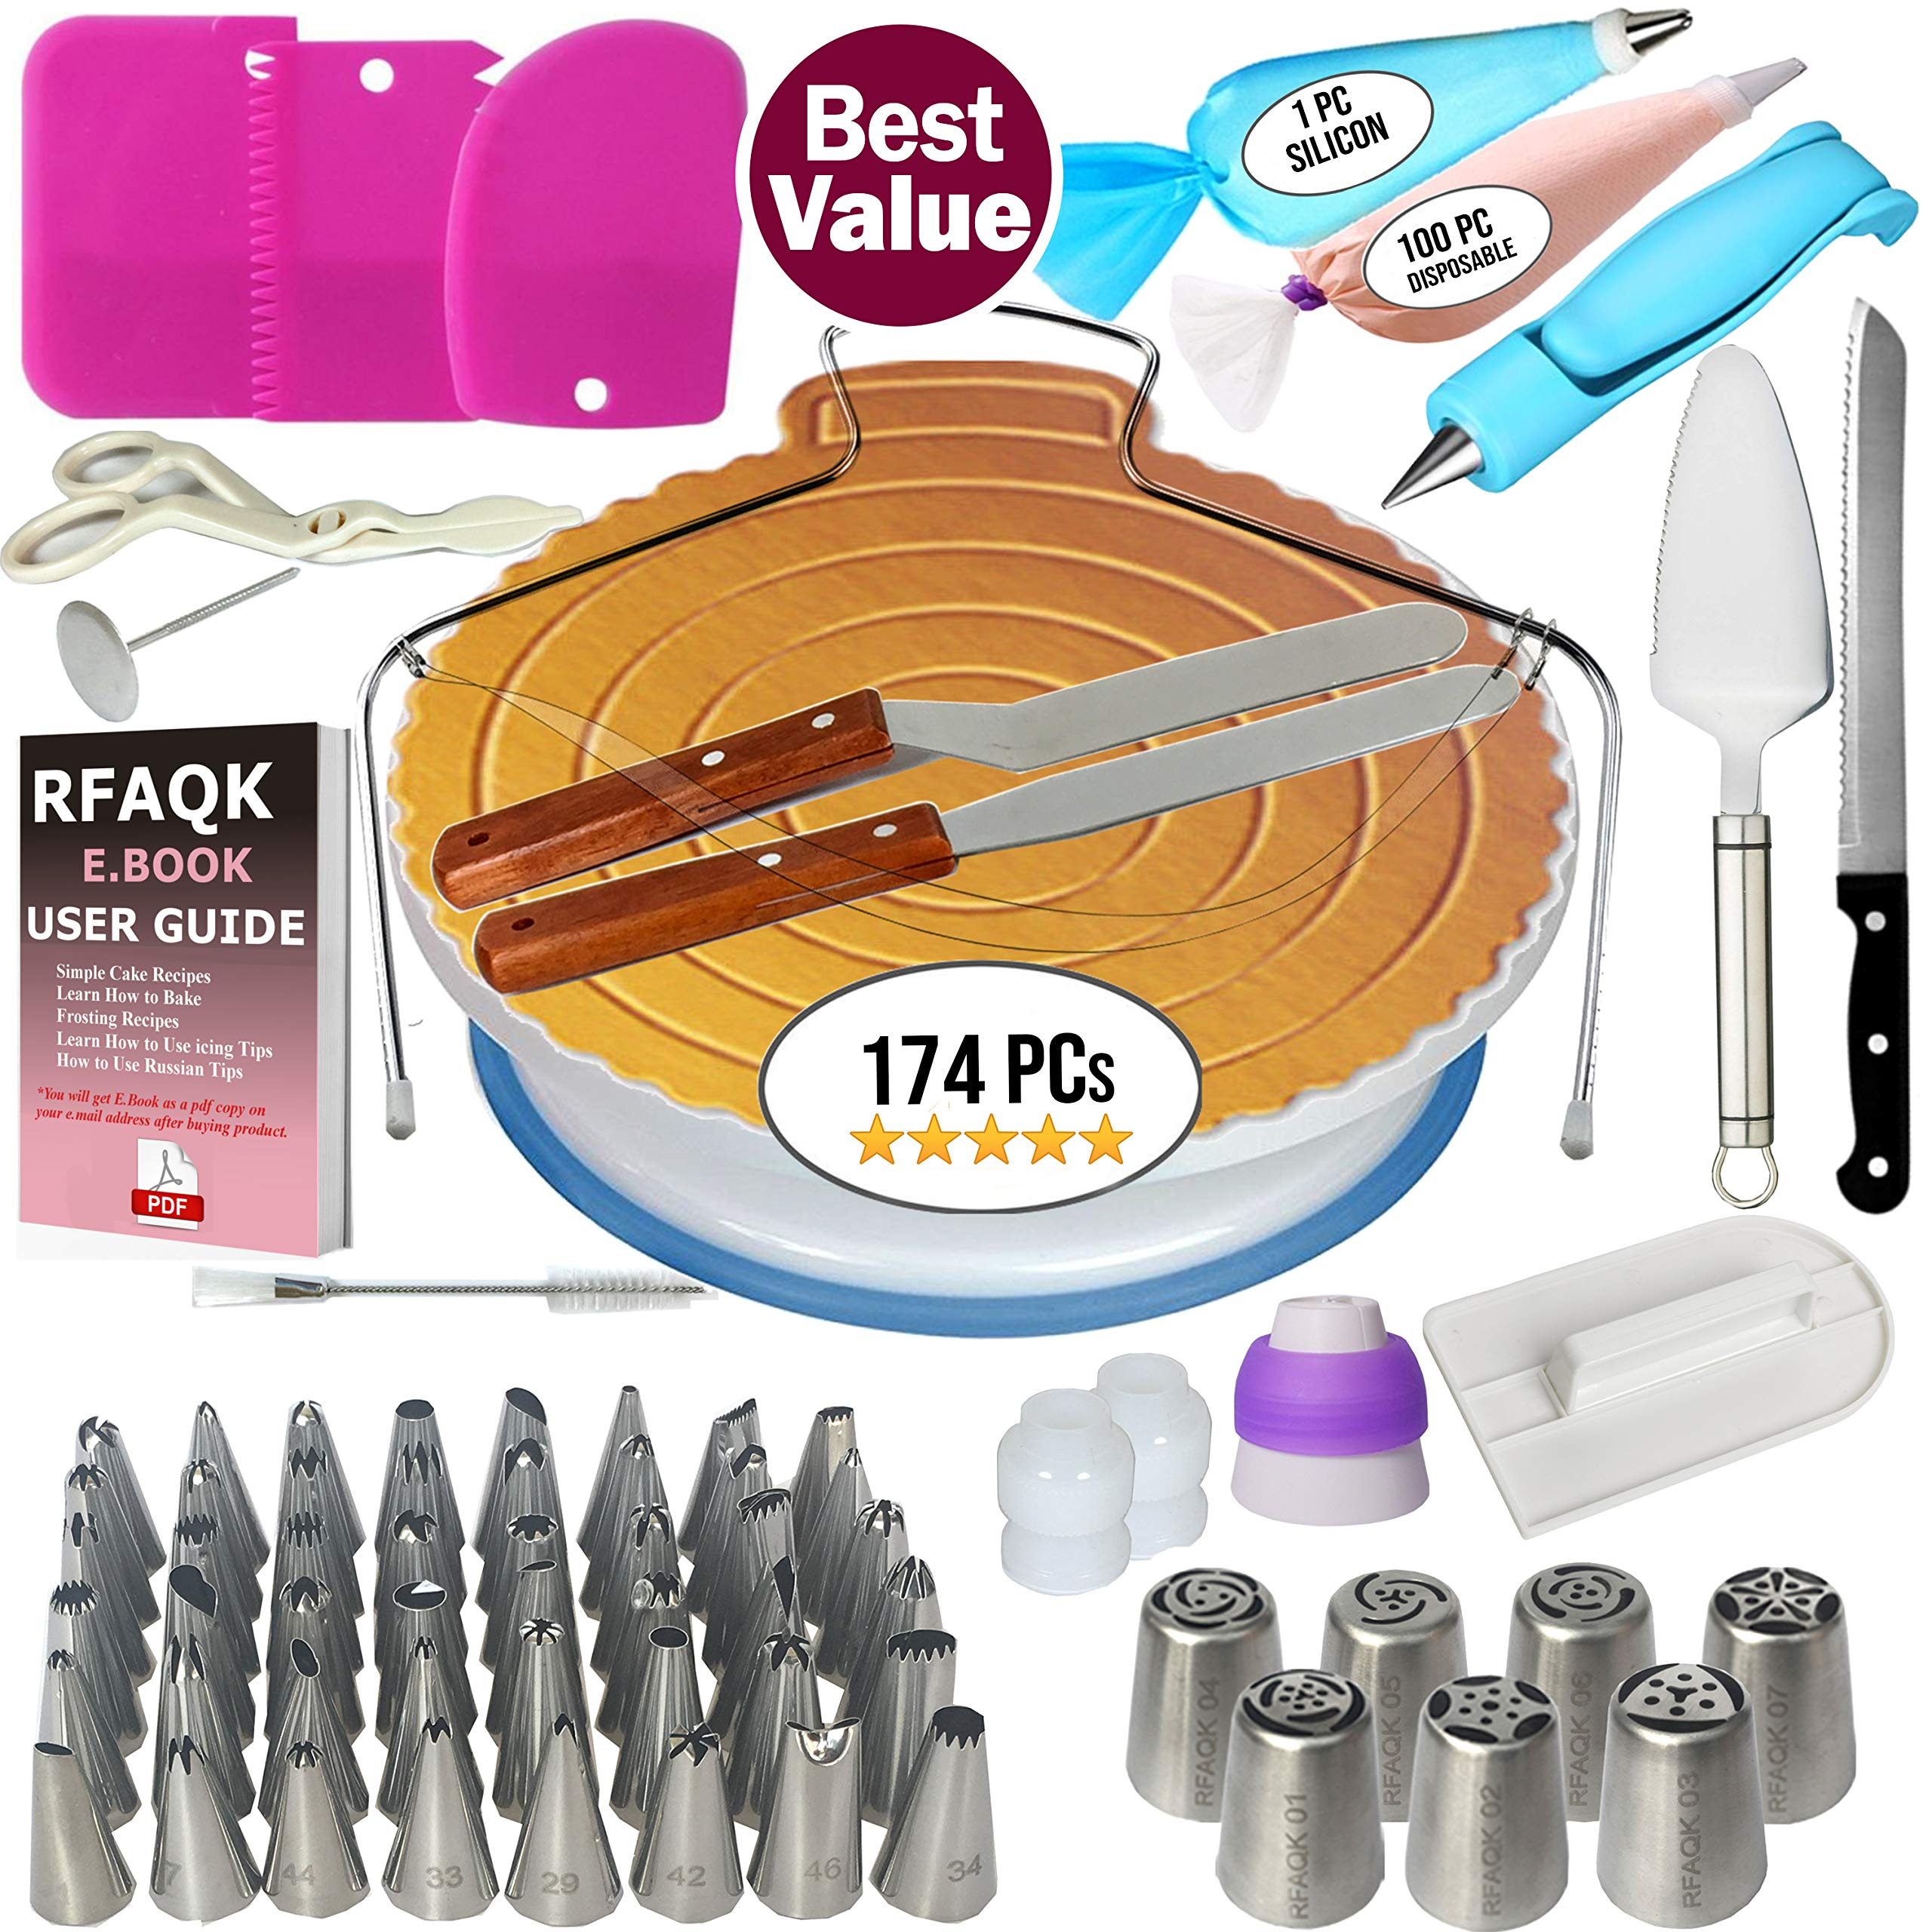 174 PCs Cake Decorating Supplies Kit for Beginners-1 Turntable stand- Cake server & knife set-48 Numbered Easy to use icing tips with pattern chart and E.Book-7 Russian Piping nozzles -2 Spatulas by RFAQK